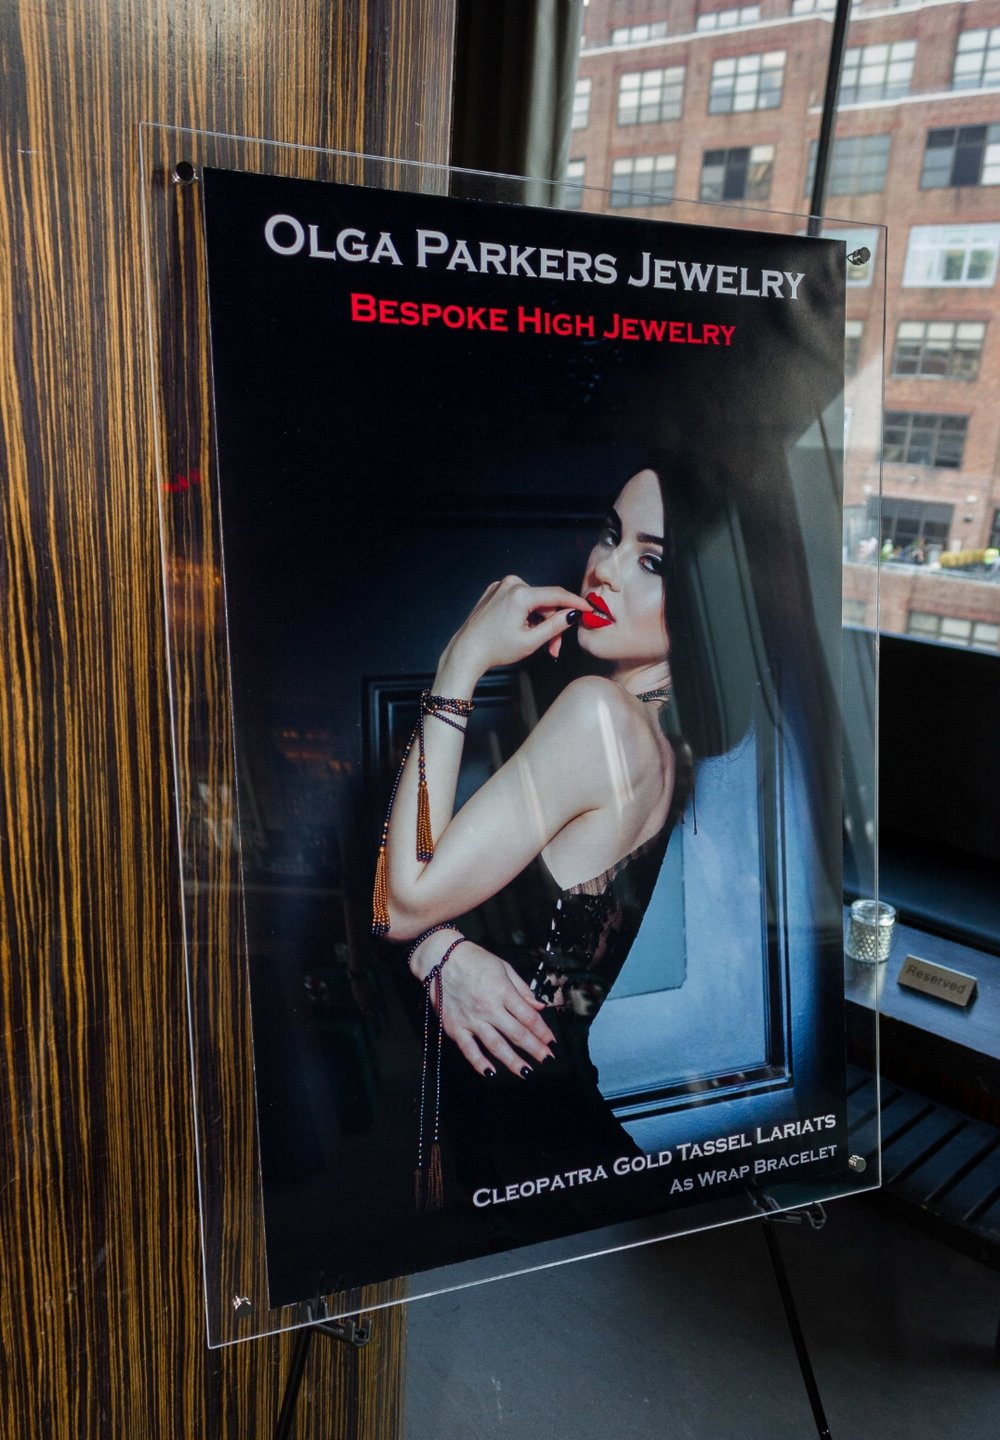 OLGA PARKERS JEWELRY PHD LAUNCH